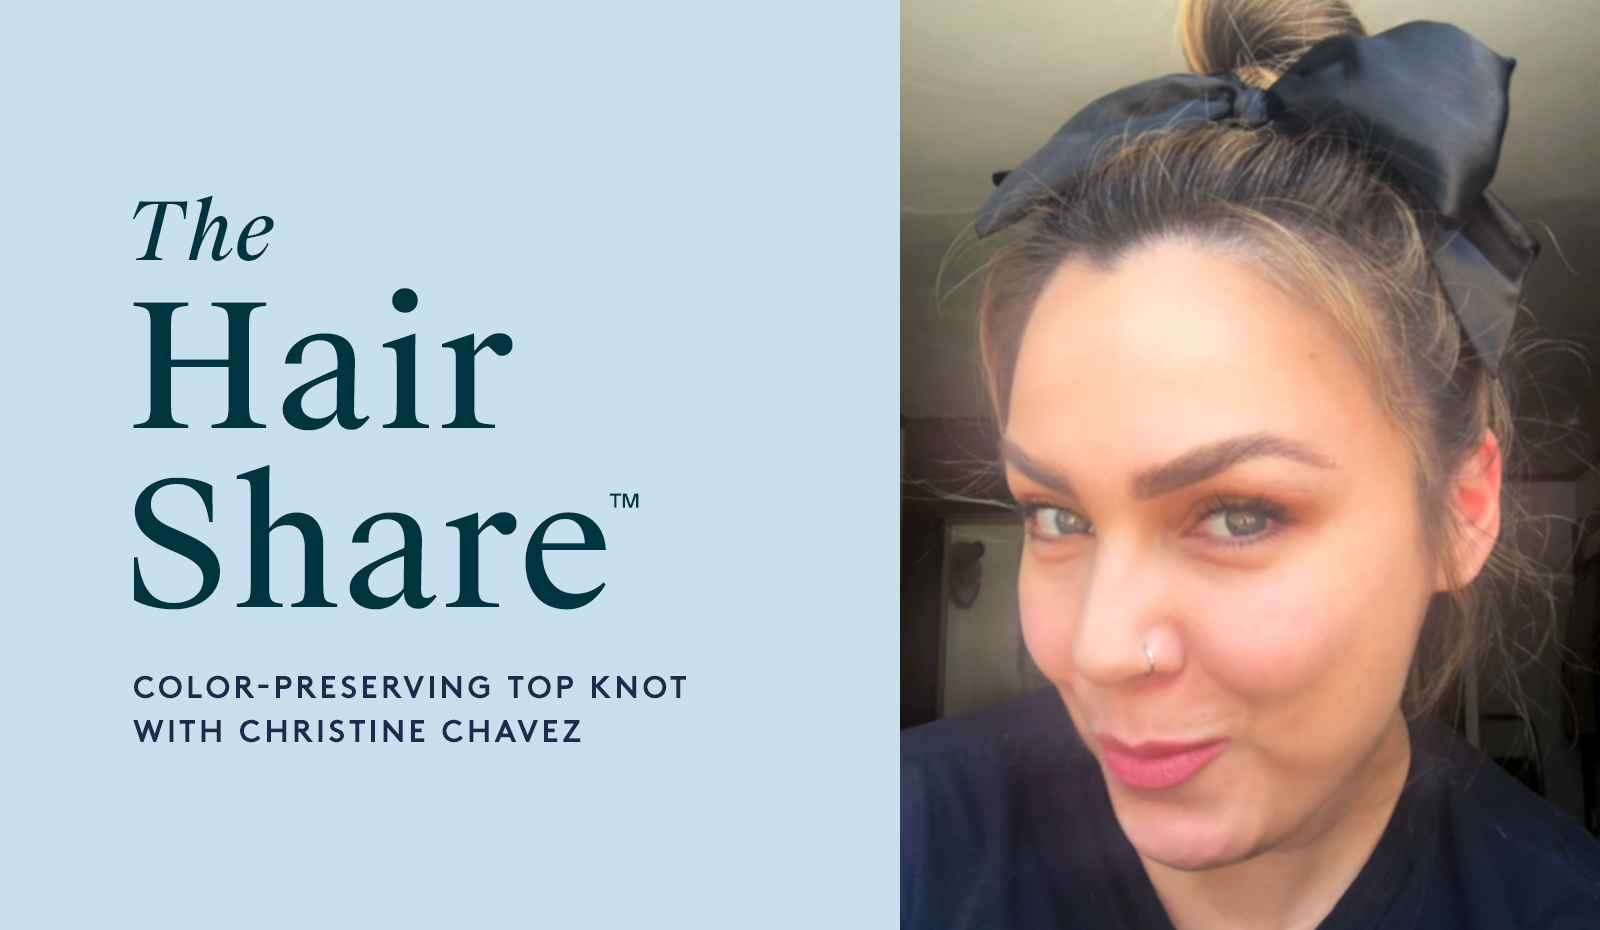 The Hair Share®: Color-Preserving Top Knot with Christine Chavez